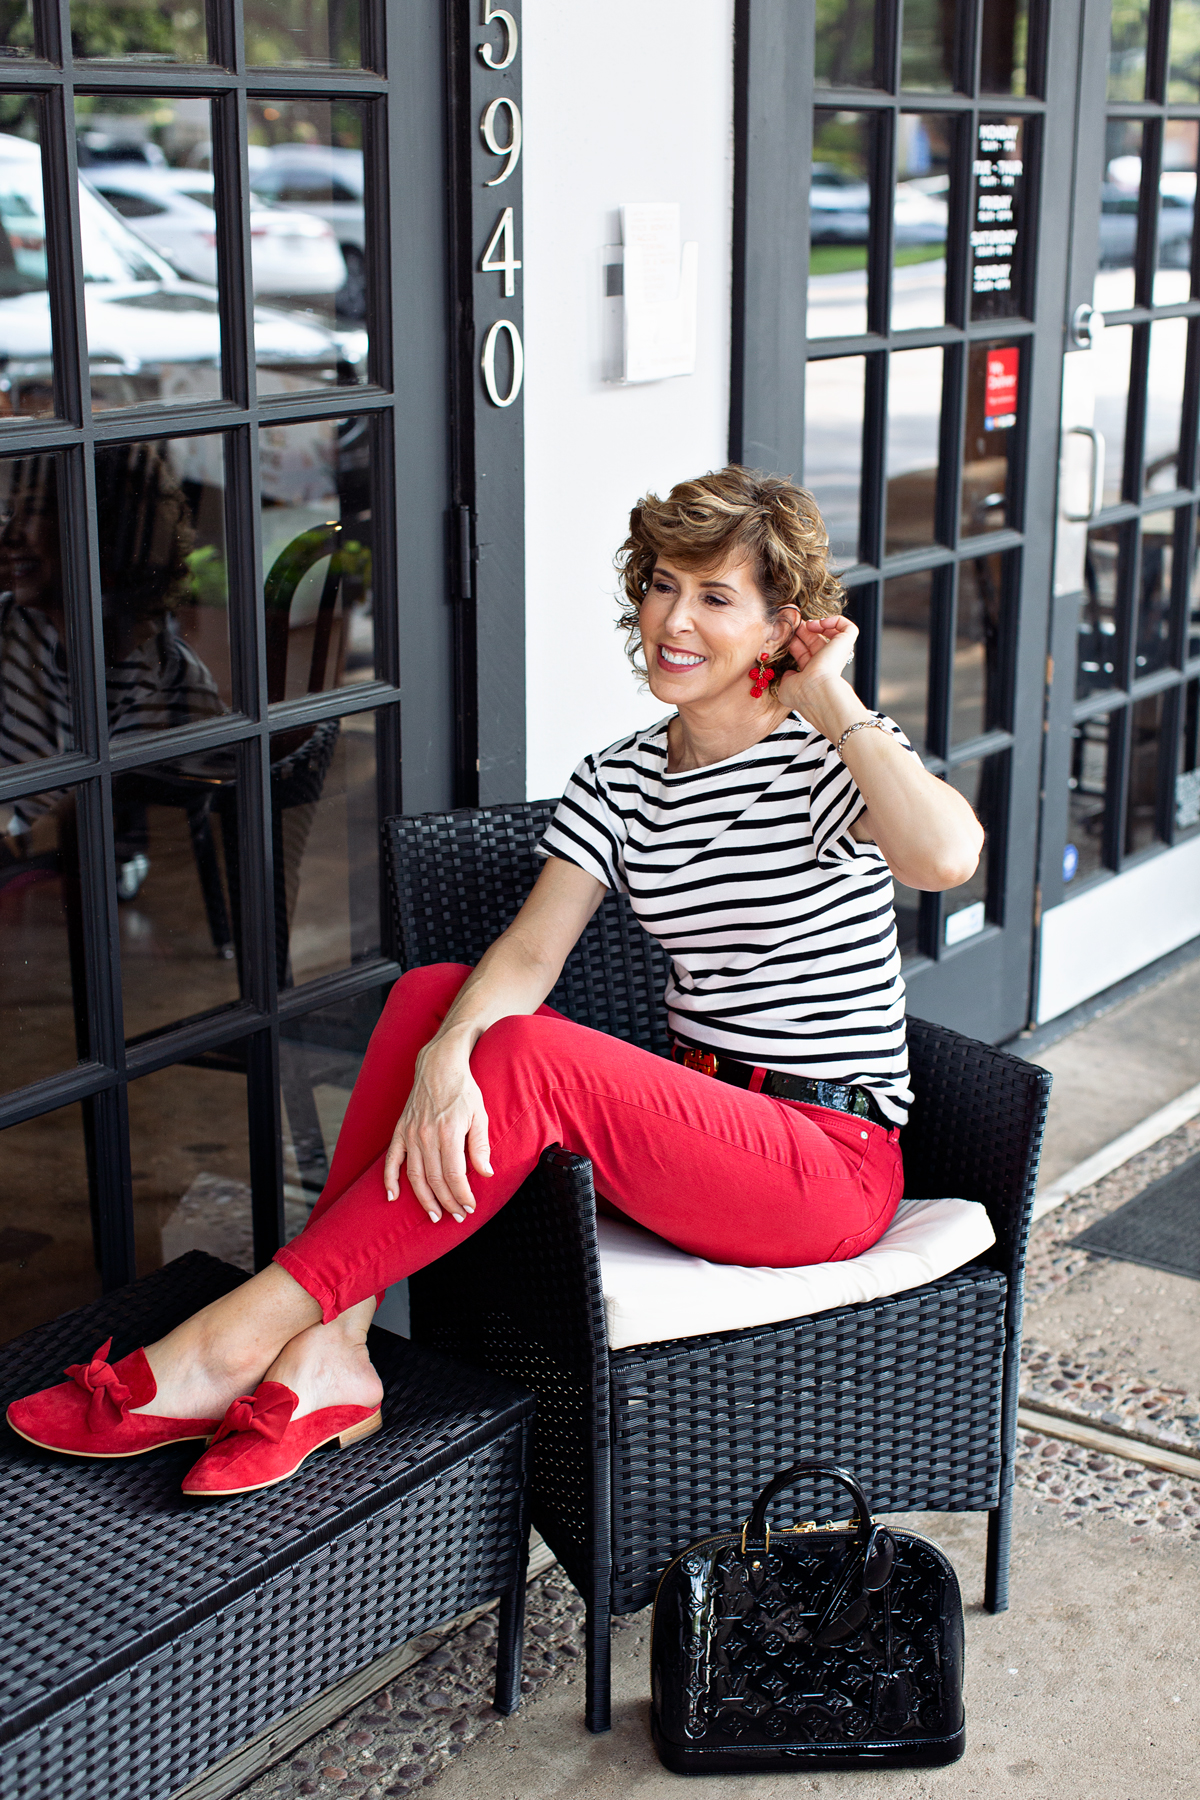 Answering reader questions, reader questions, kate spade tee, kate spade striped tee, kate spade ruffle sleeve tee